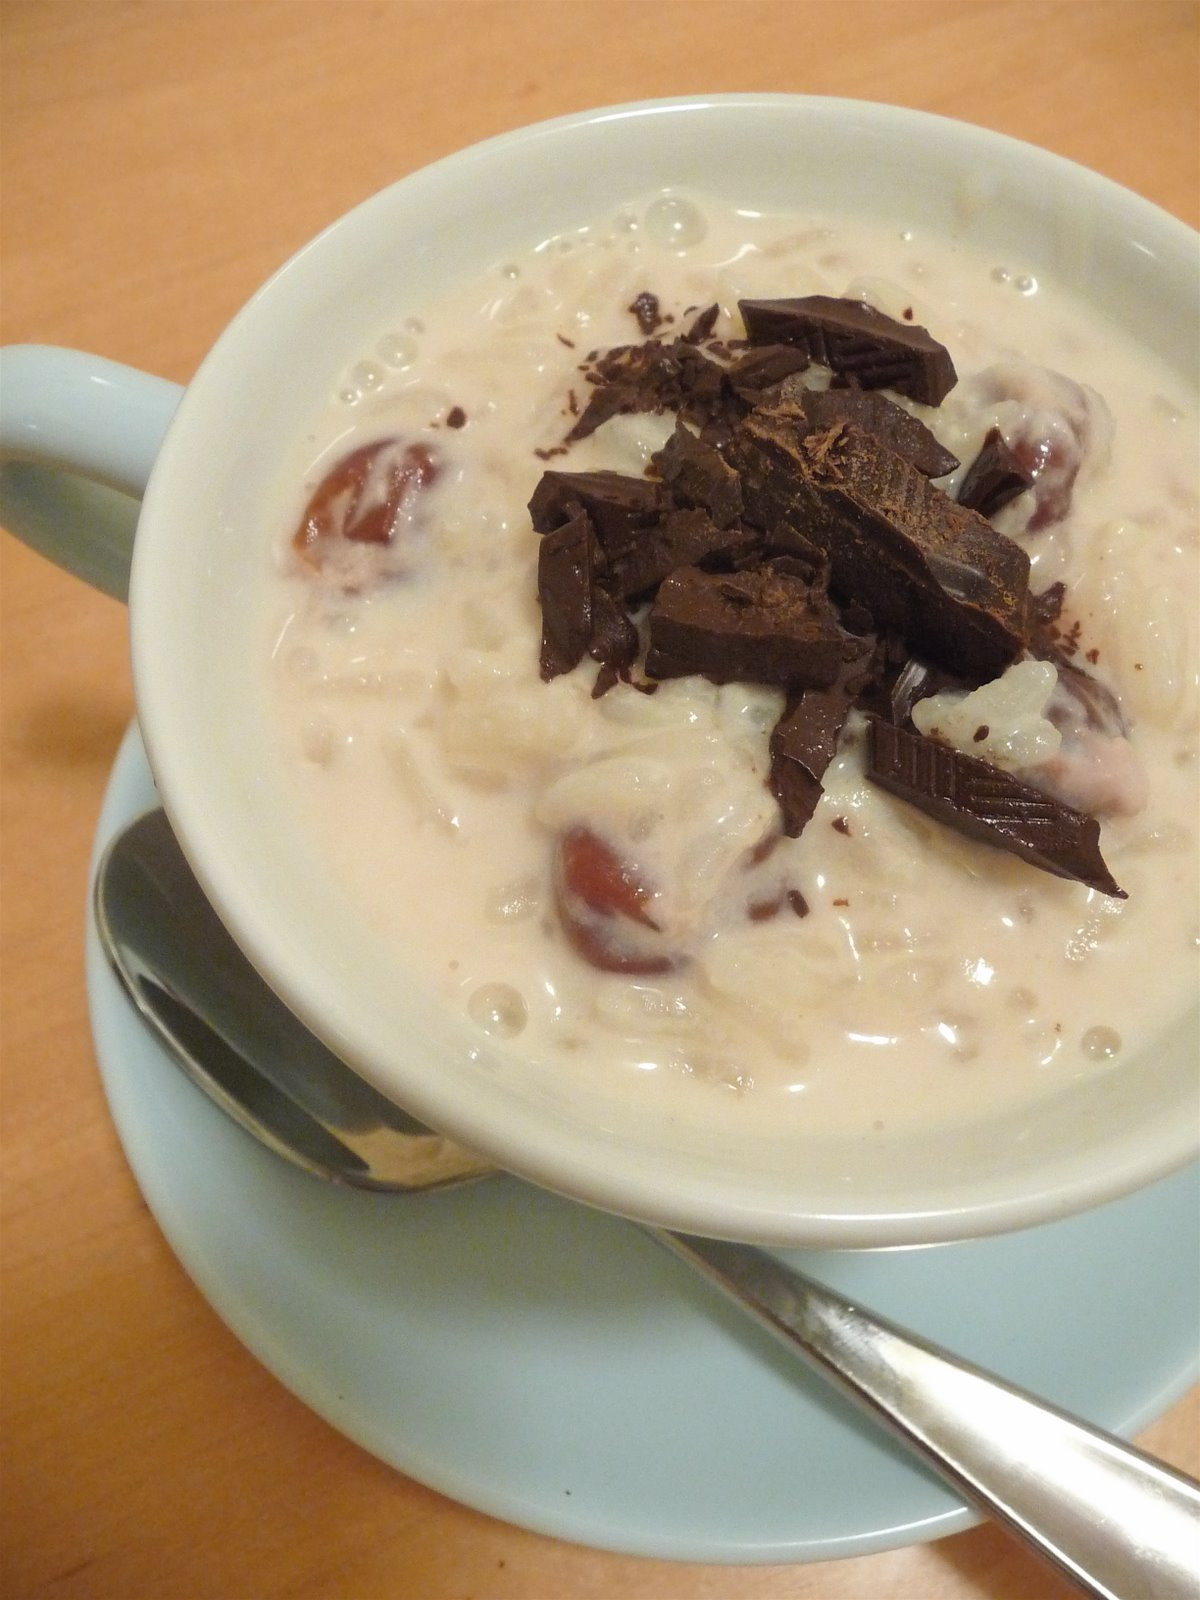 Rice pudding with dried cherries and chocolate